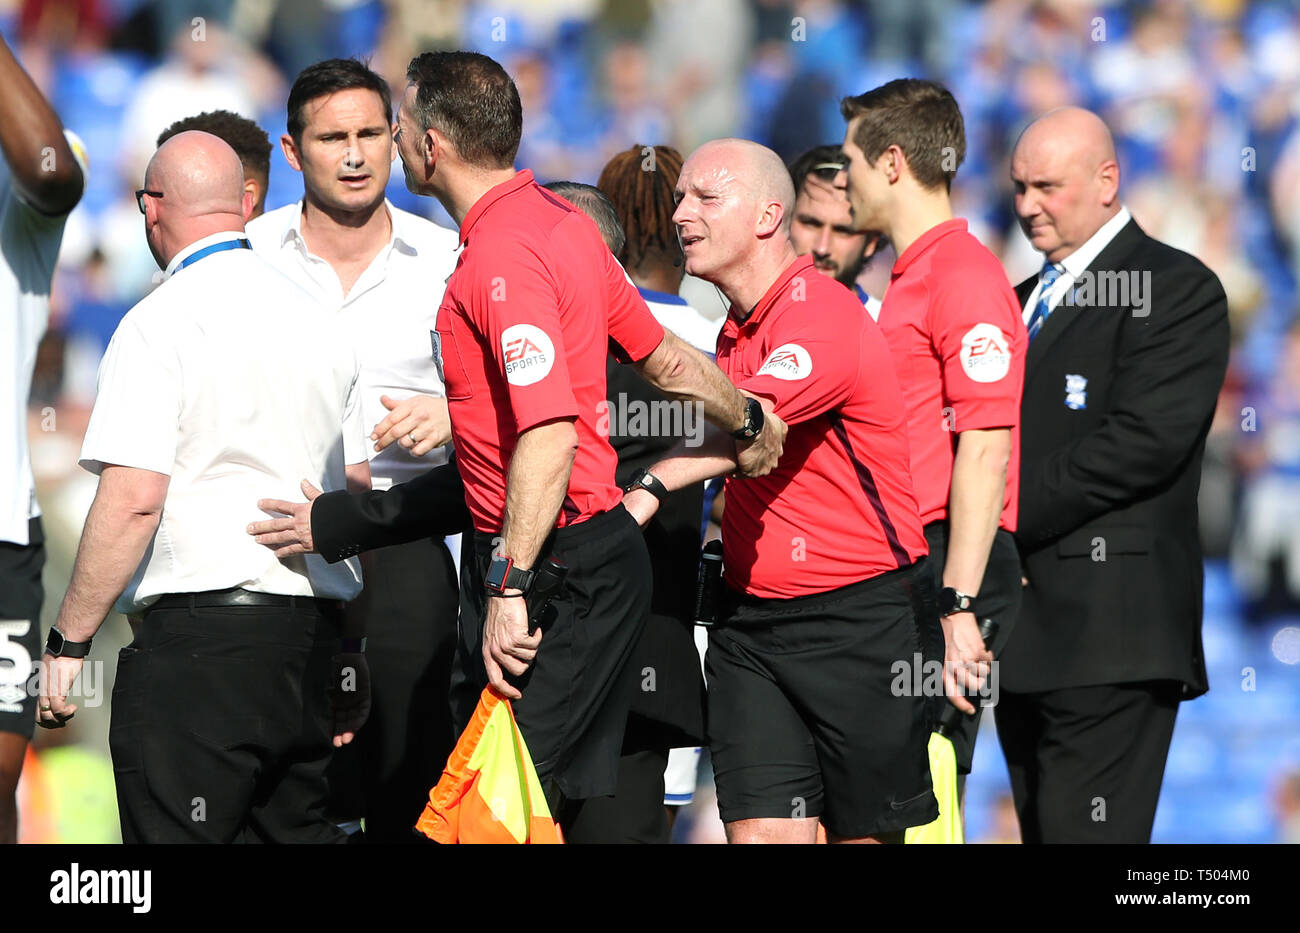 A match official pulls referee Simon Hooper away from Derby County manager Frank Lampard (second left) after exchanging words following the Sky Bet Championship match at St Andrew's Trillion Trophy Stadium, Birmingham. Stock Photo